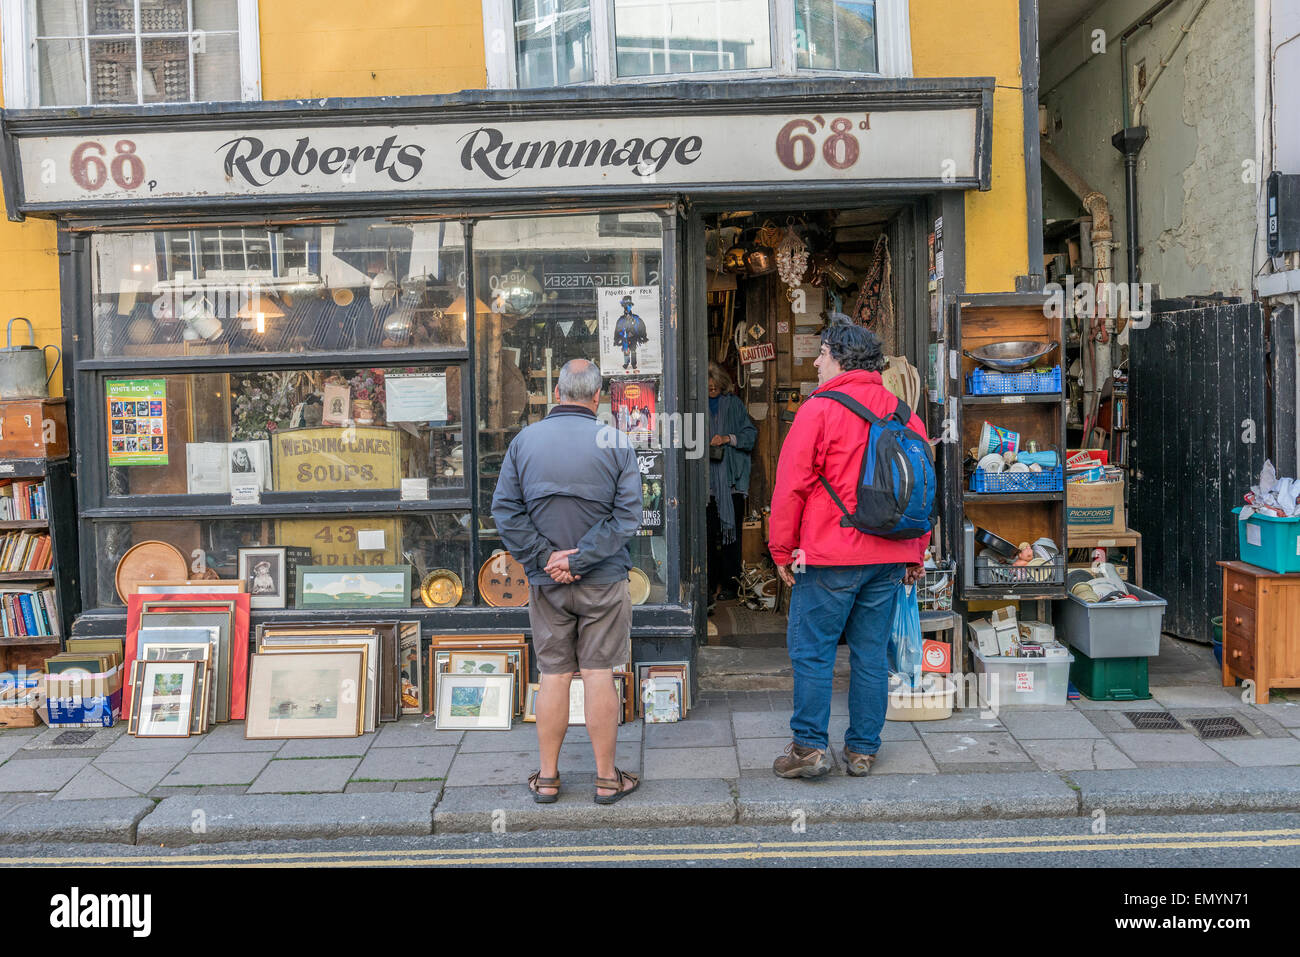 Junk shop. Old town. Hastings. East Sussex. UK - Stock Image